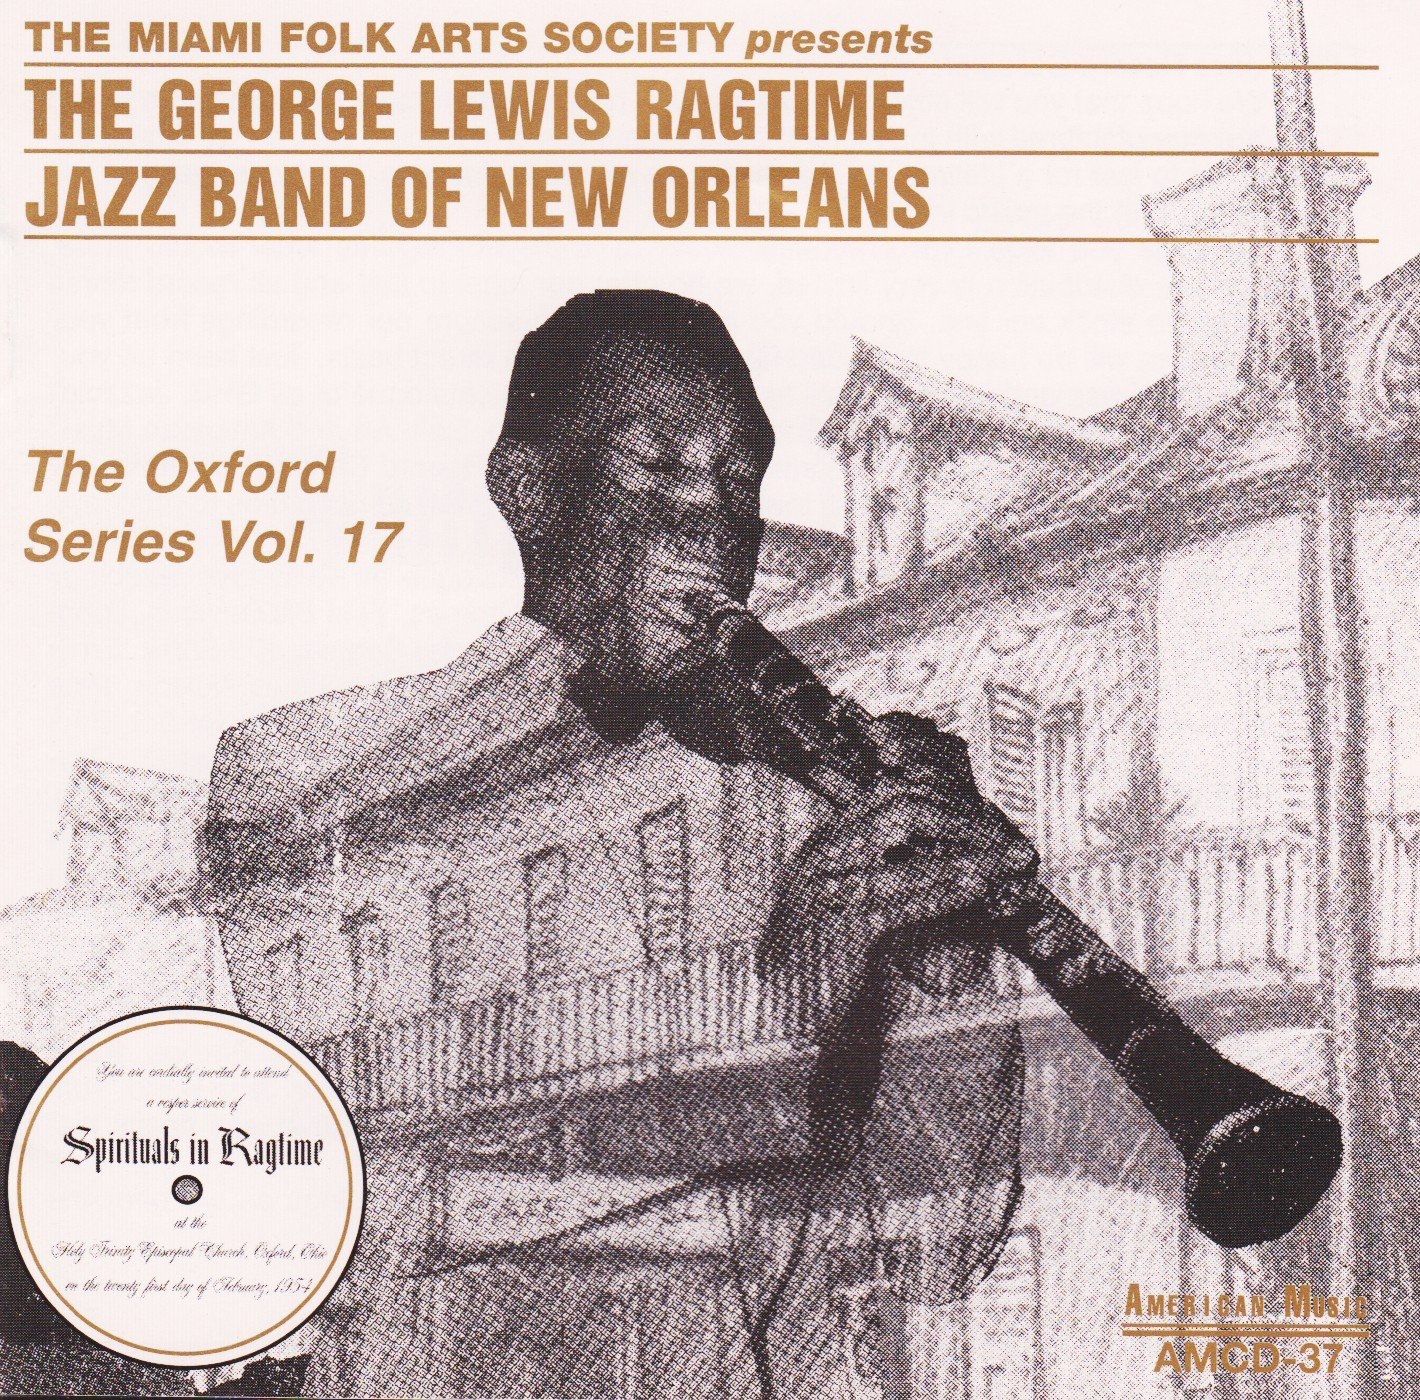 The George Lewis Ragtime Jazz Band Of New Orleans: The Complete Holy Trinity Church Concert (Oxford Series, Vol. 17)